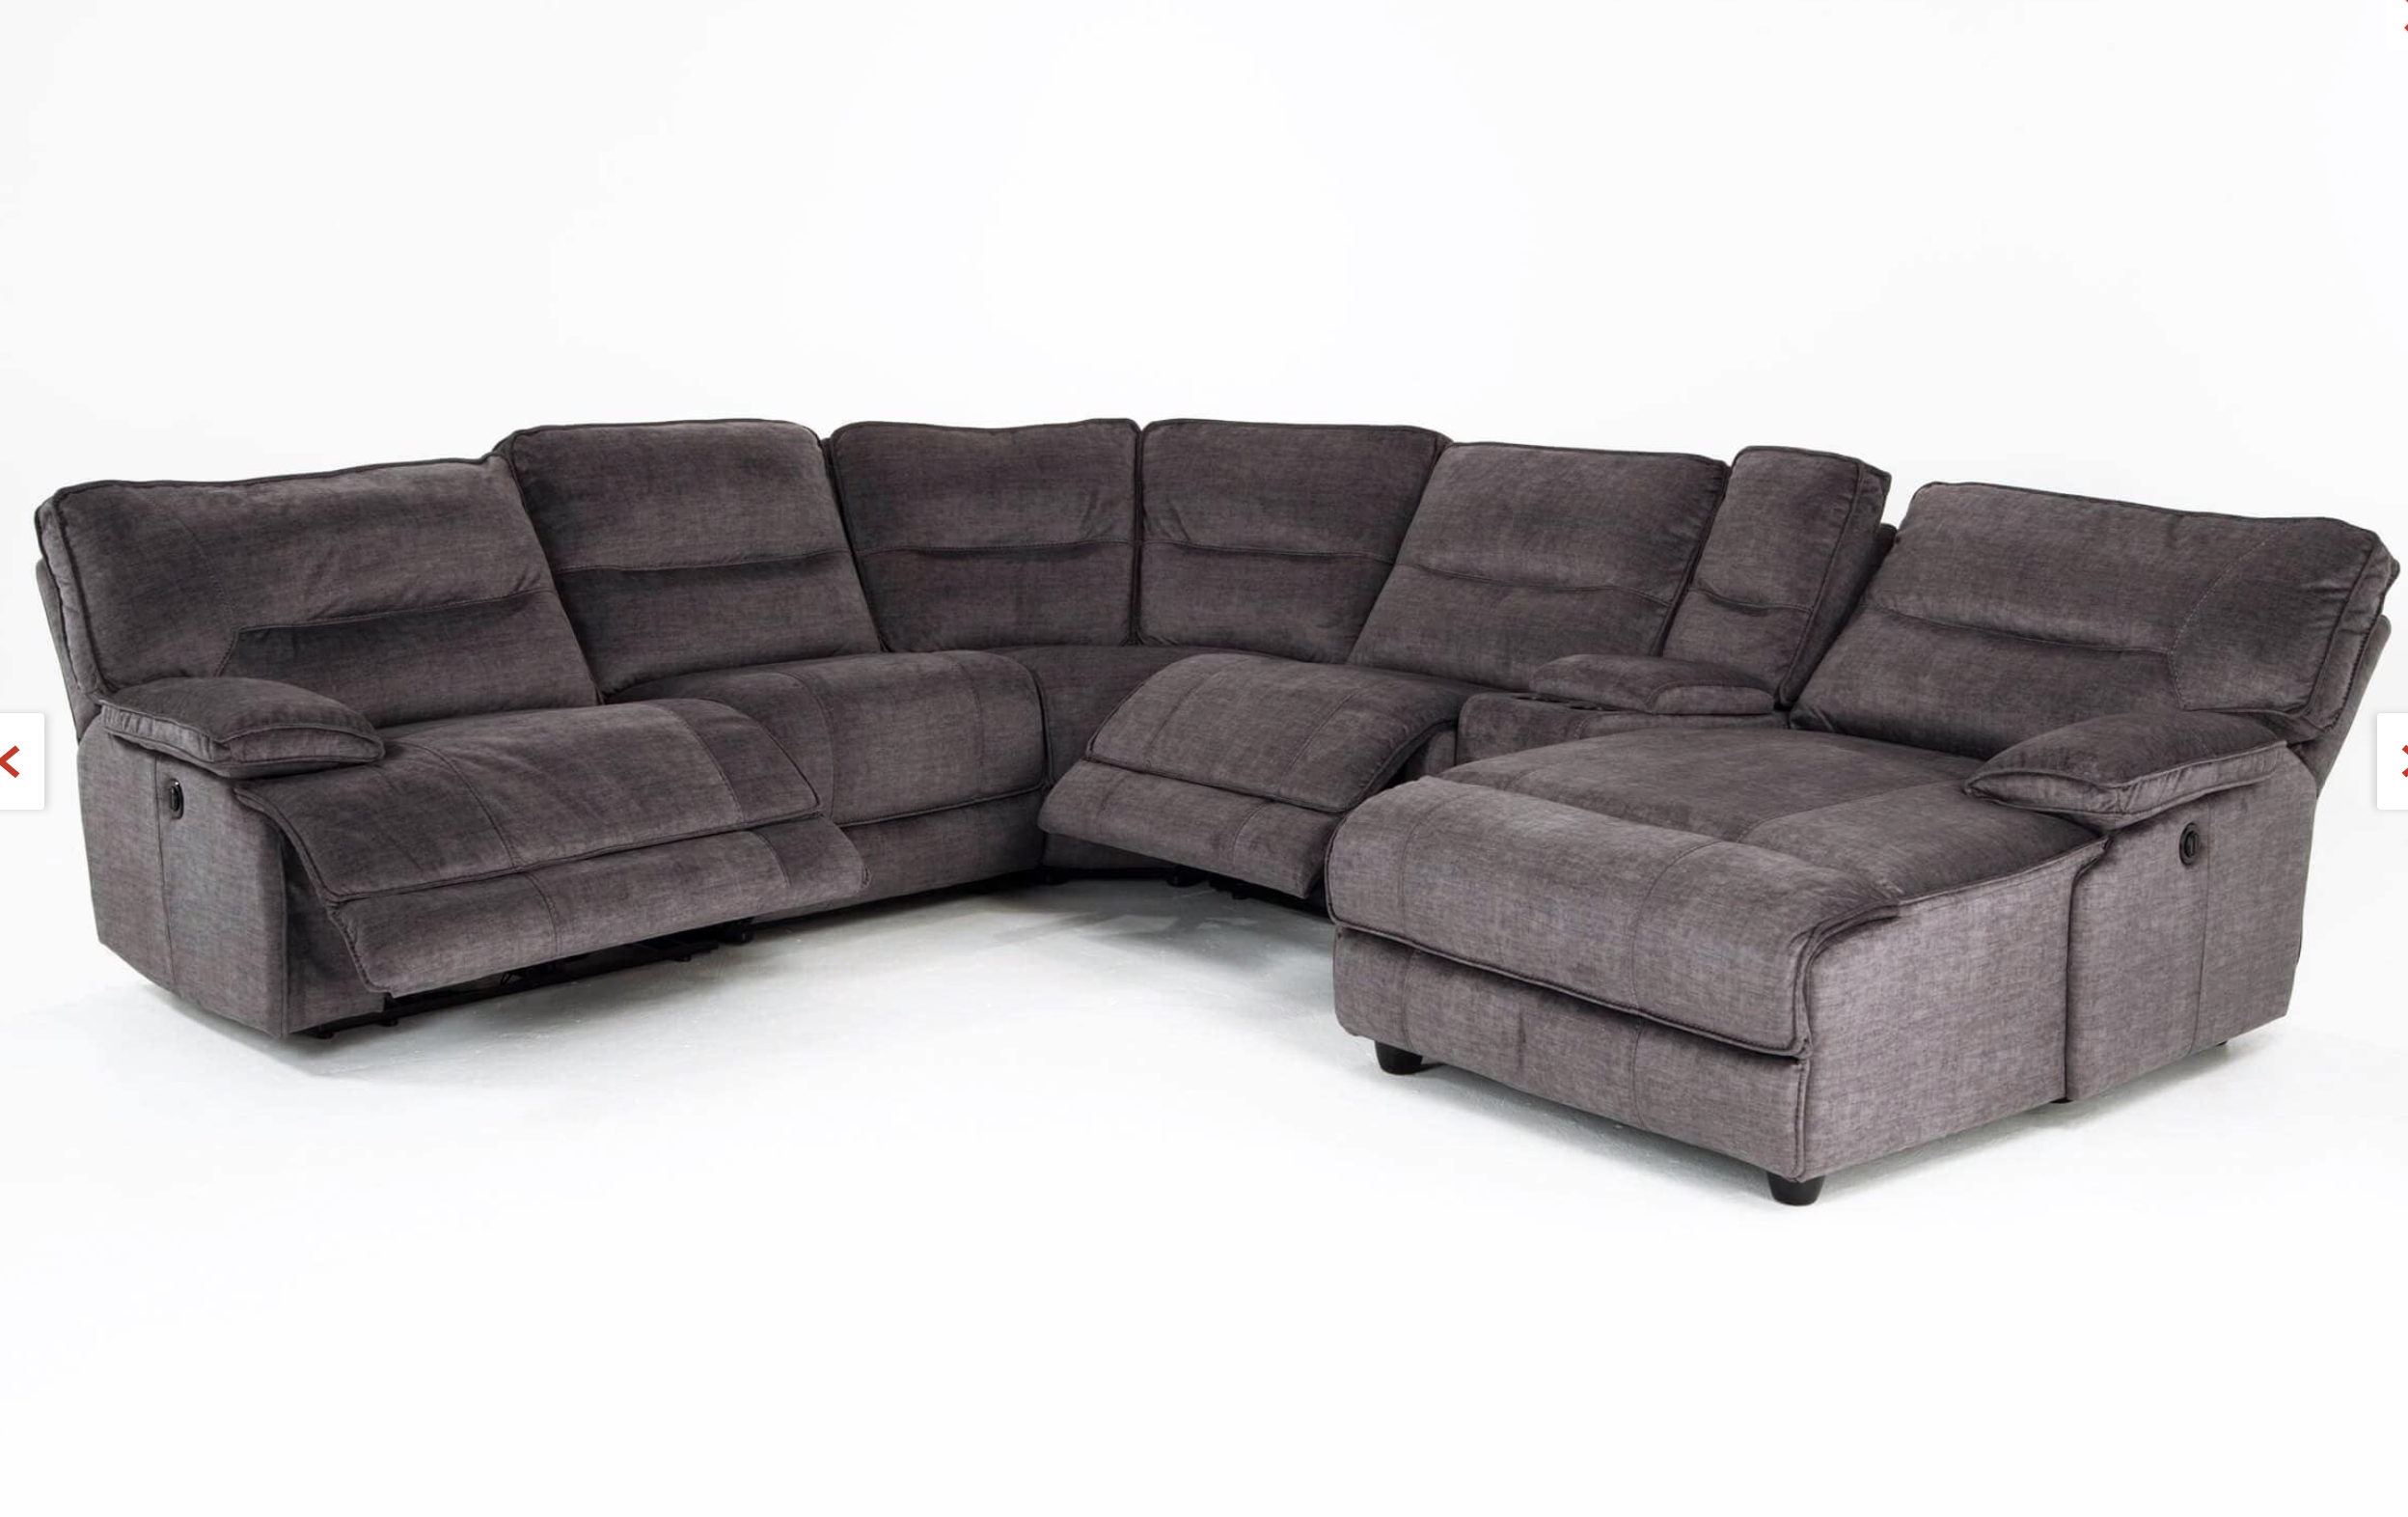 Pacifica Gray 6 Piece Power Reclining Left Arm Facing Pertaining To Pacifica Gray Power Reclining Sofas (View 5 of 15)